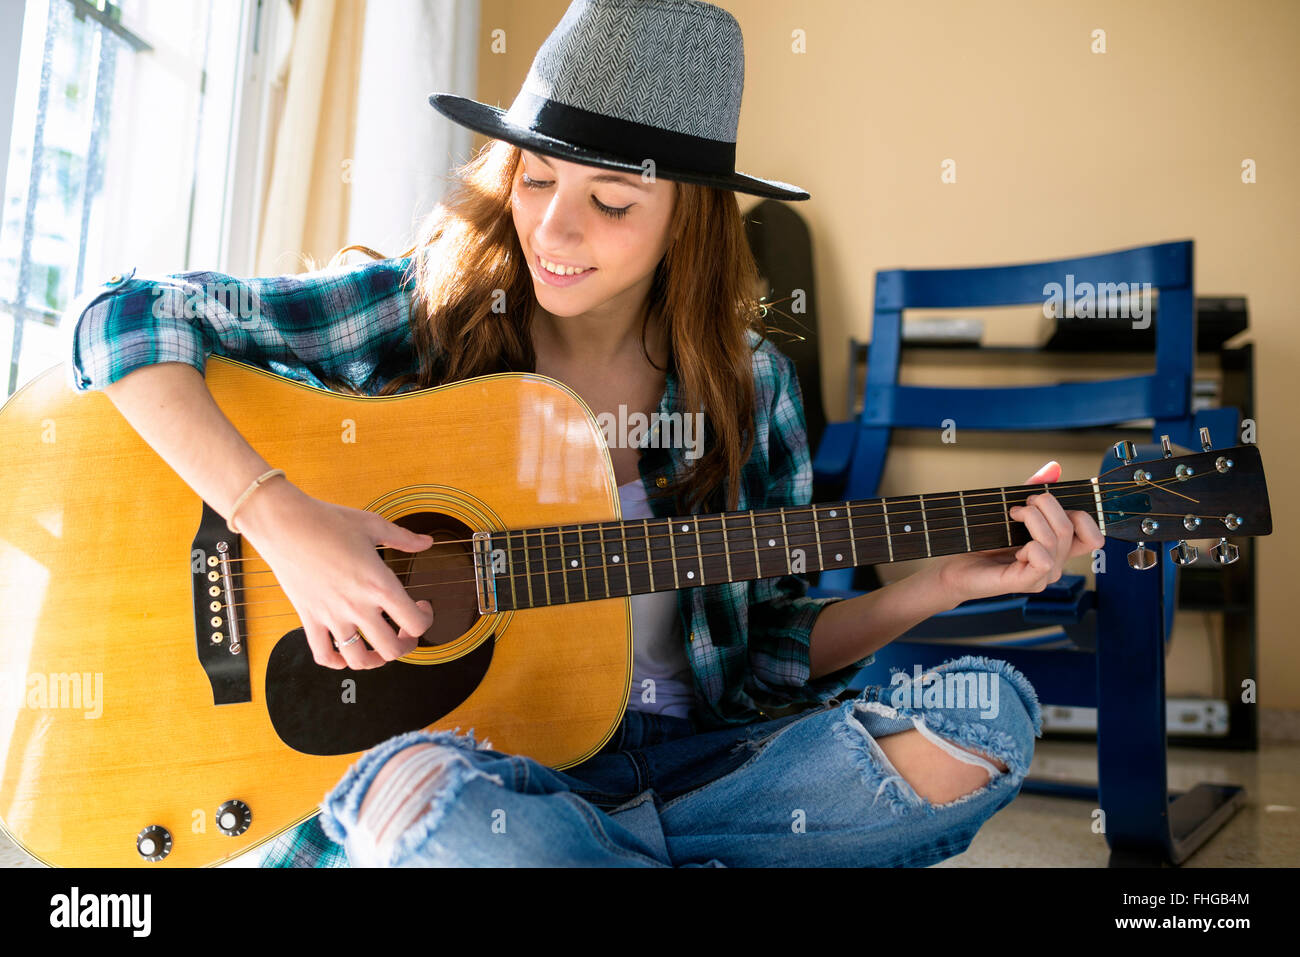 Smiling young woman playing guitar indoors - Stock Image